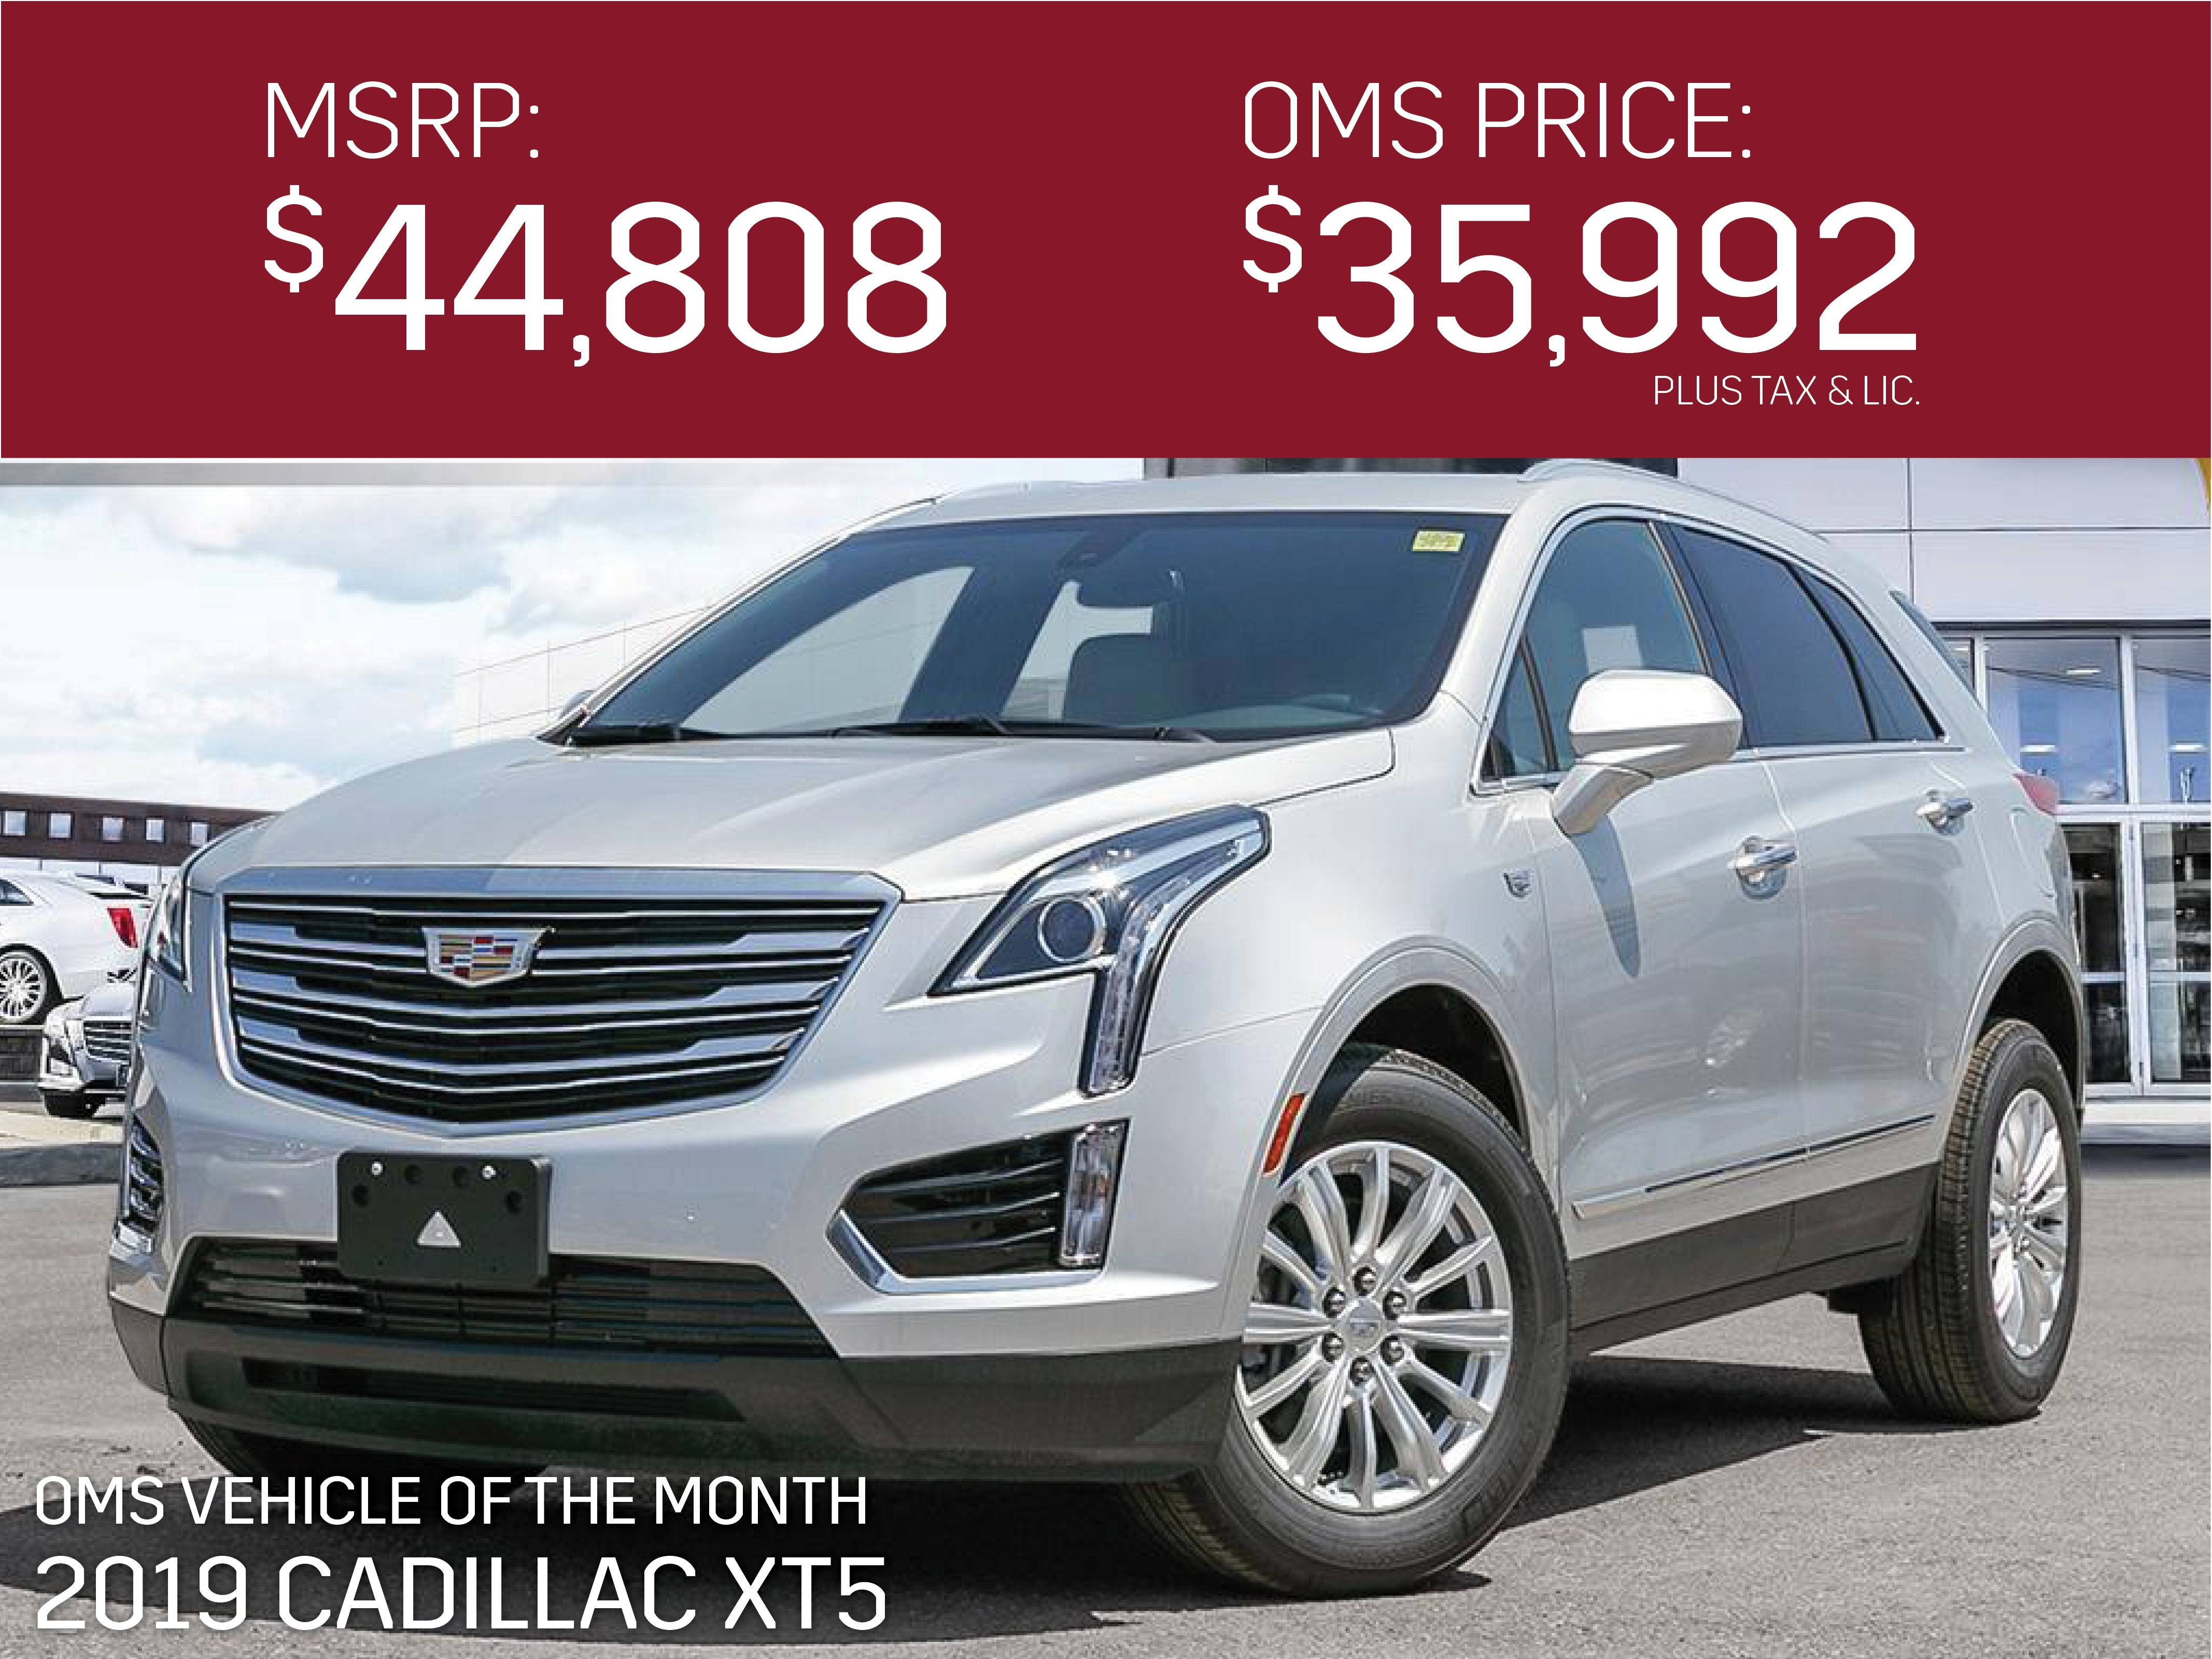 OMS Vehicle of the Month